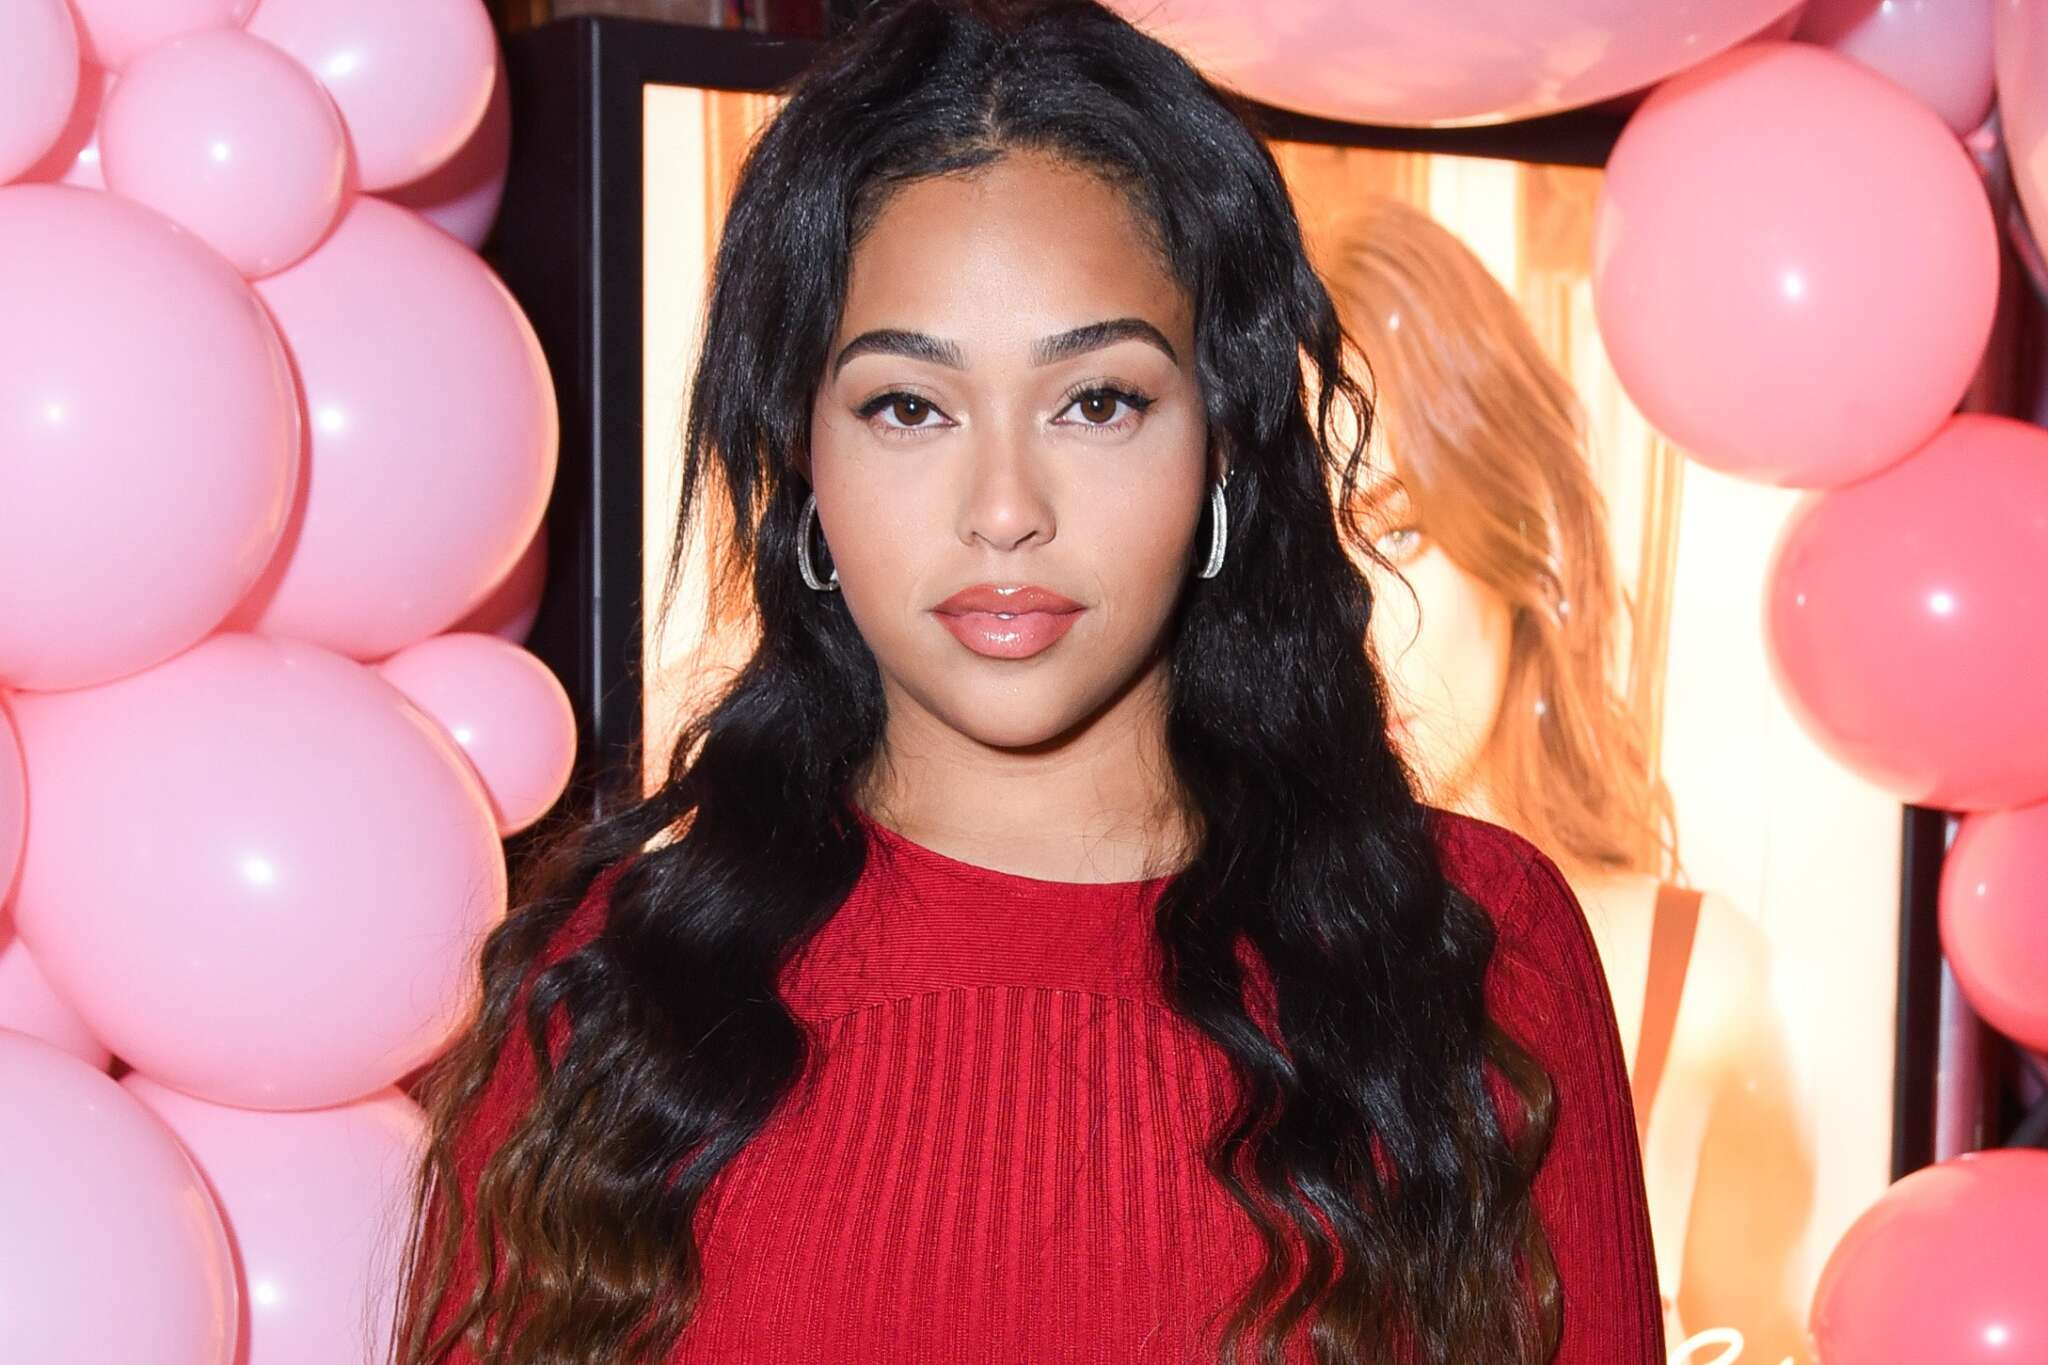 Jordyn Woods Dropped Her Clothes And Looks Amazing In This Pink Photo Shoot